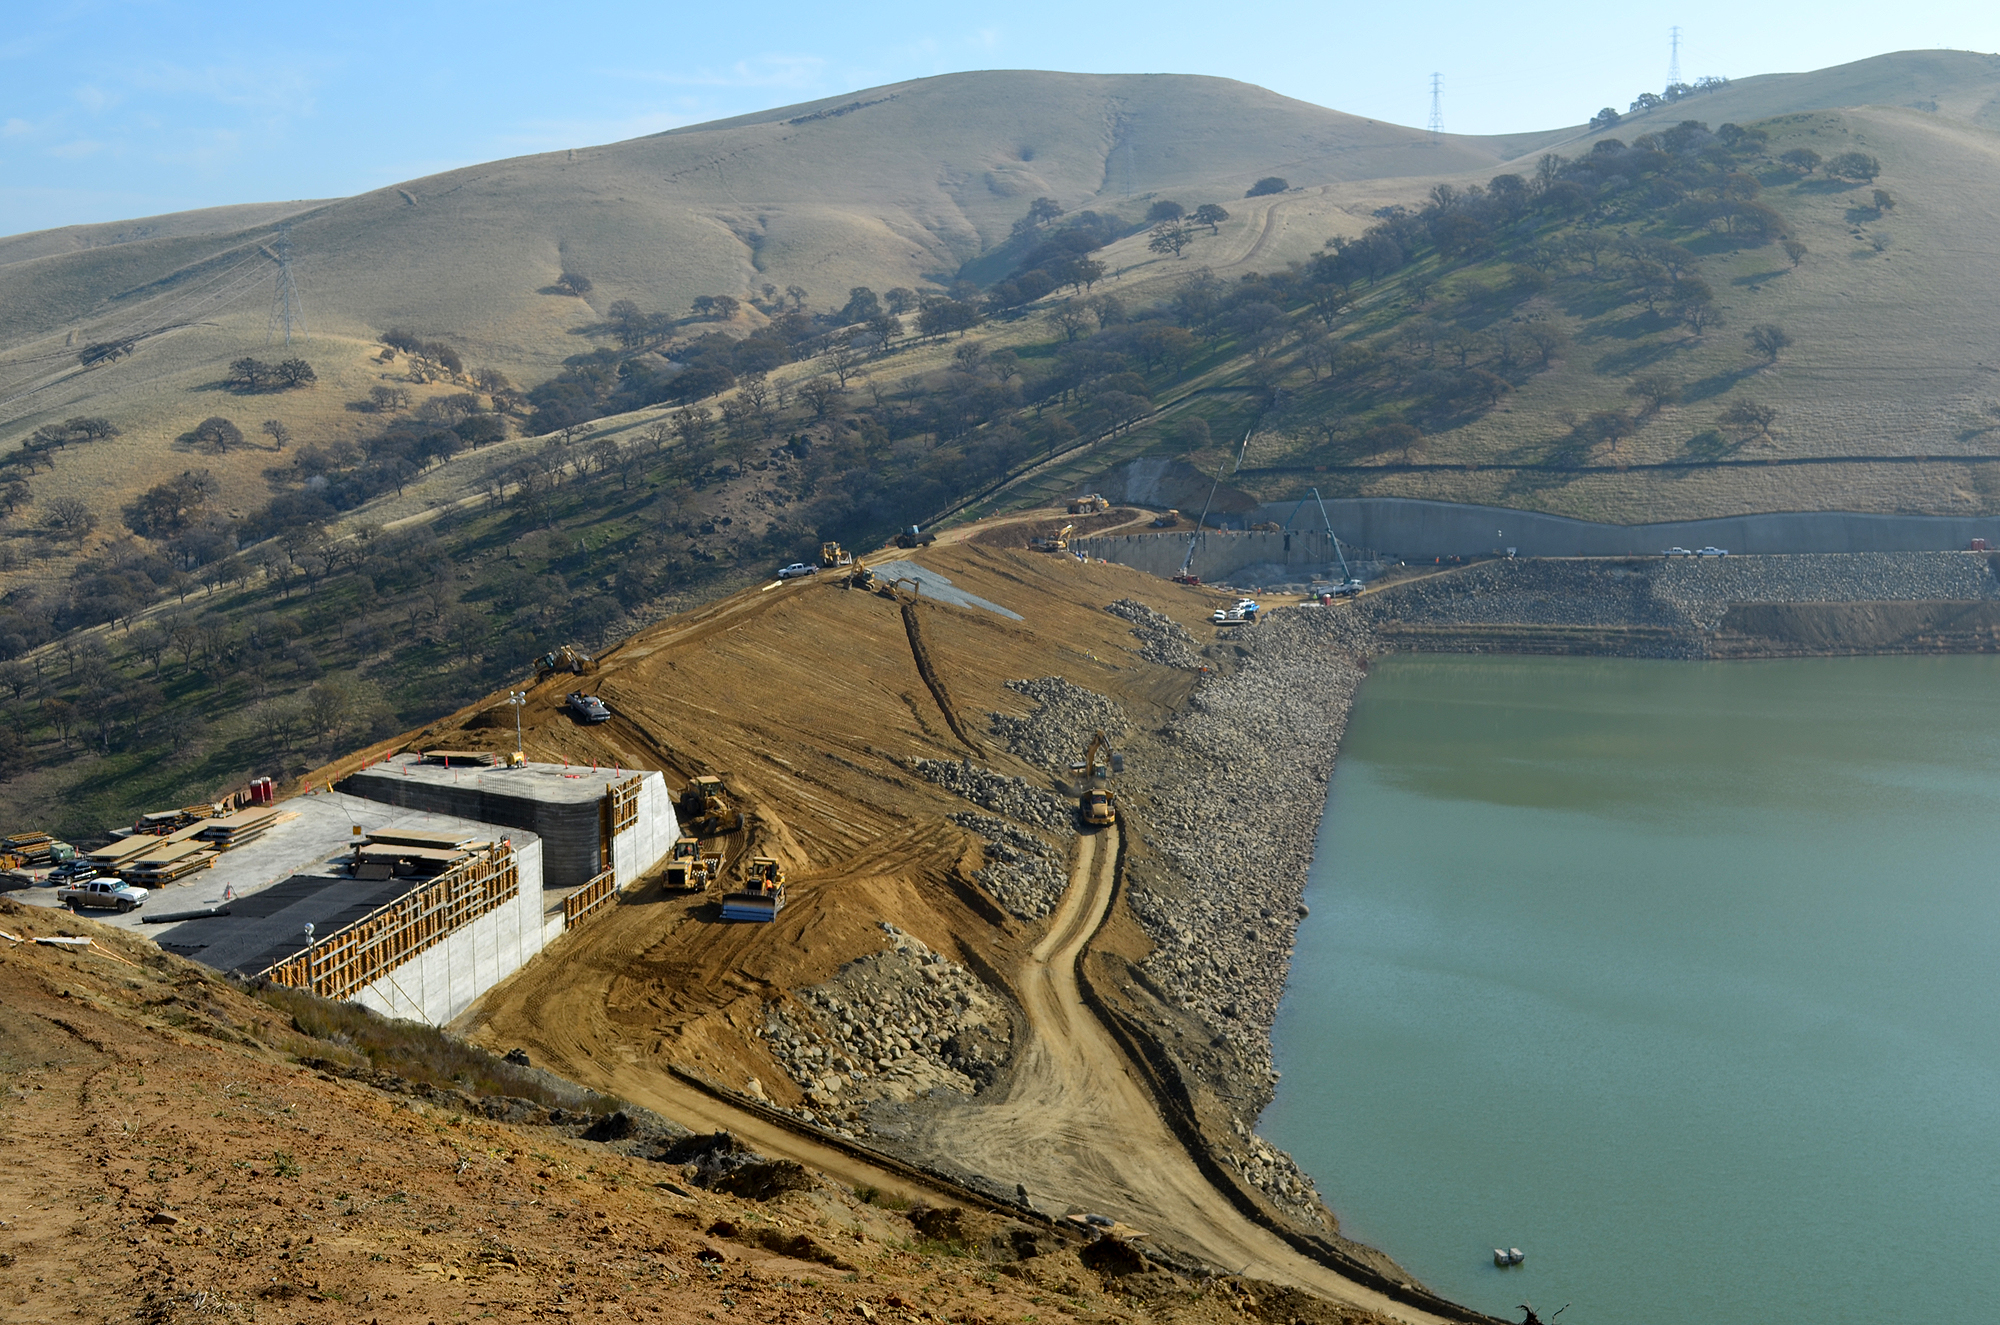 The dam at its 521 foot elevation